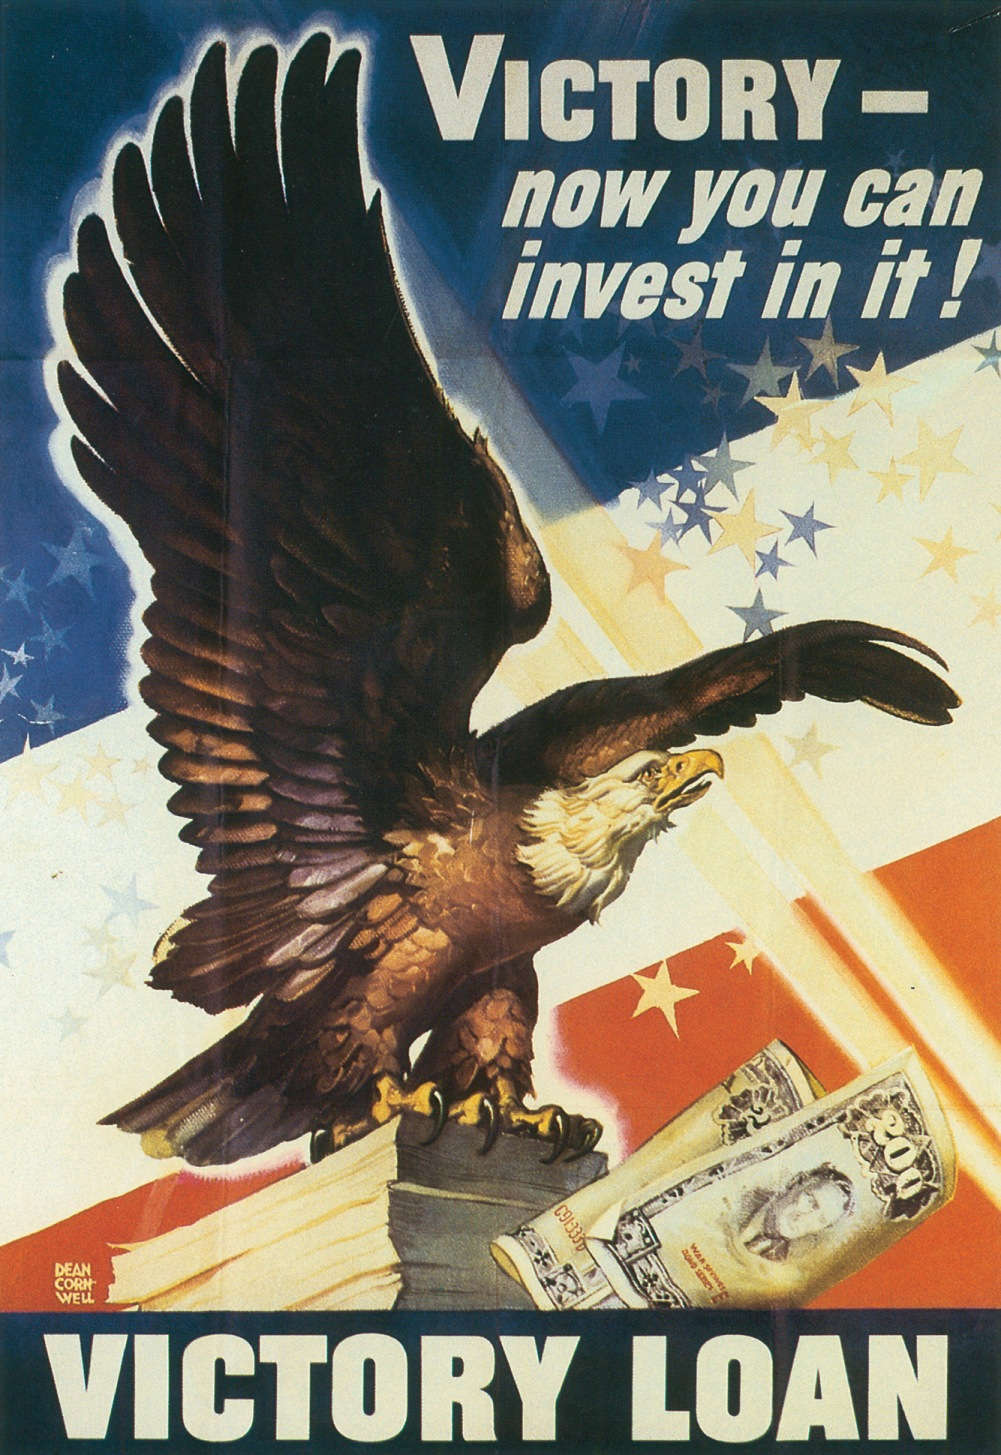 Poster for US Victory Loan Drive, 1945